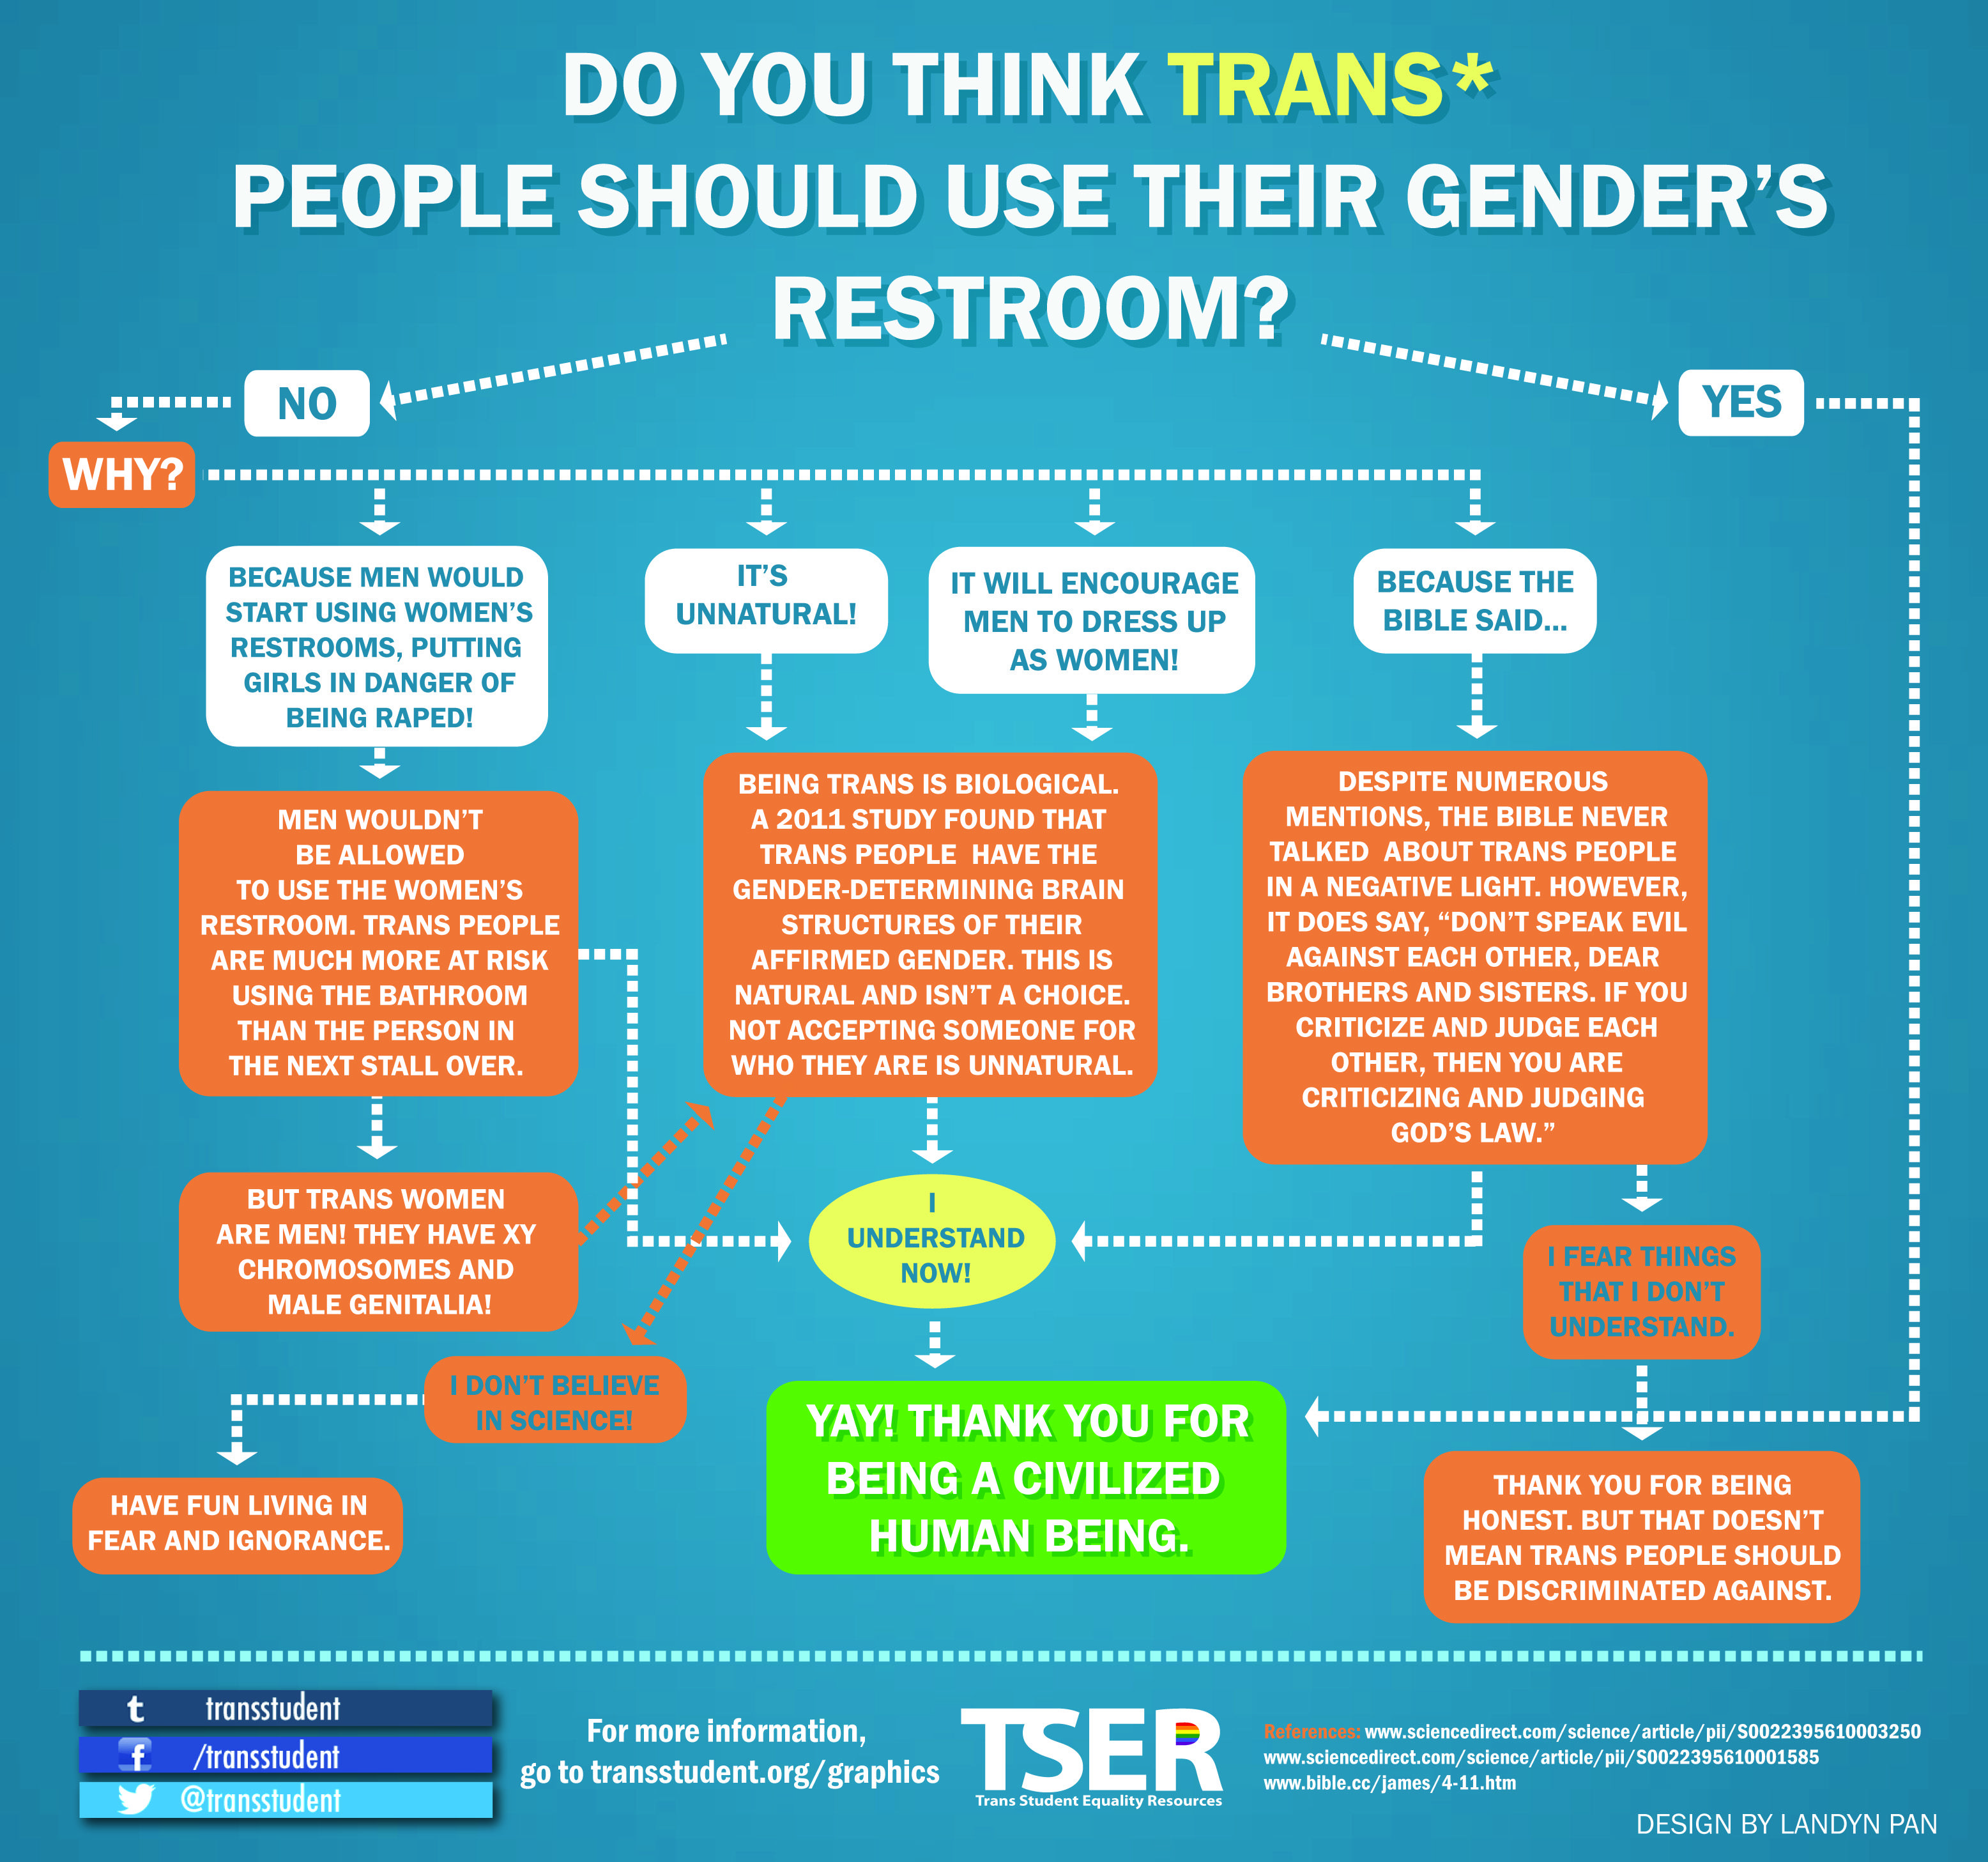 Can We Put This Chart In Every Public Restroom Cause That Would